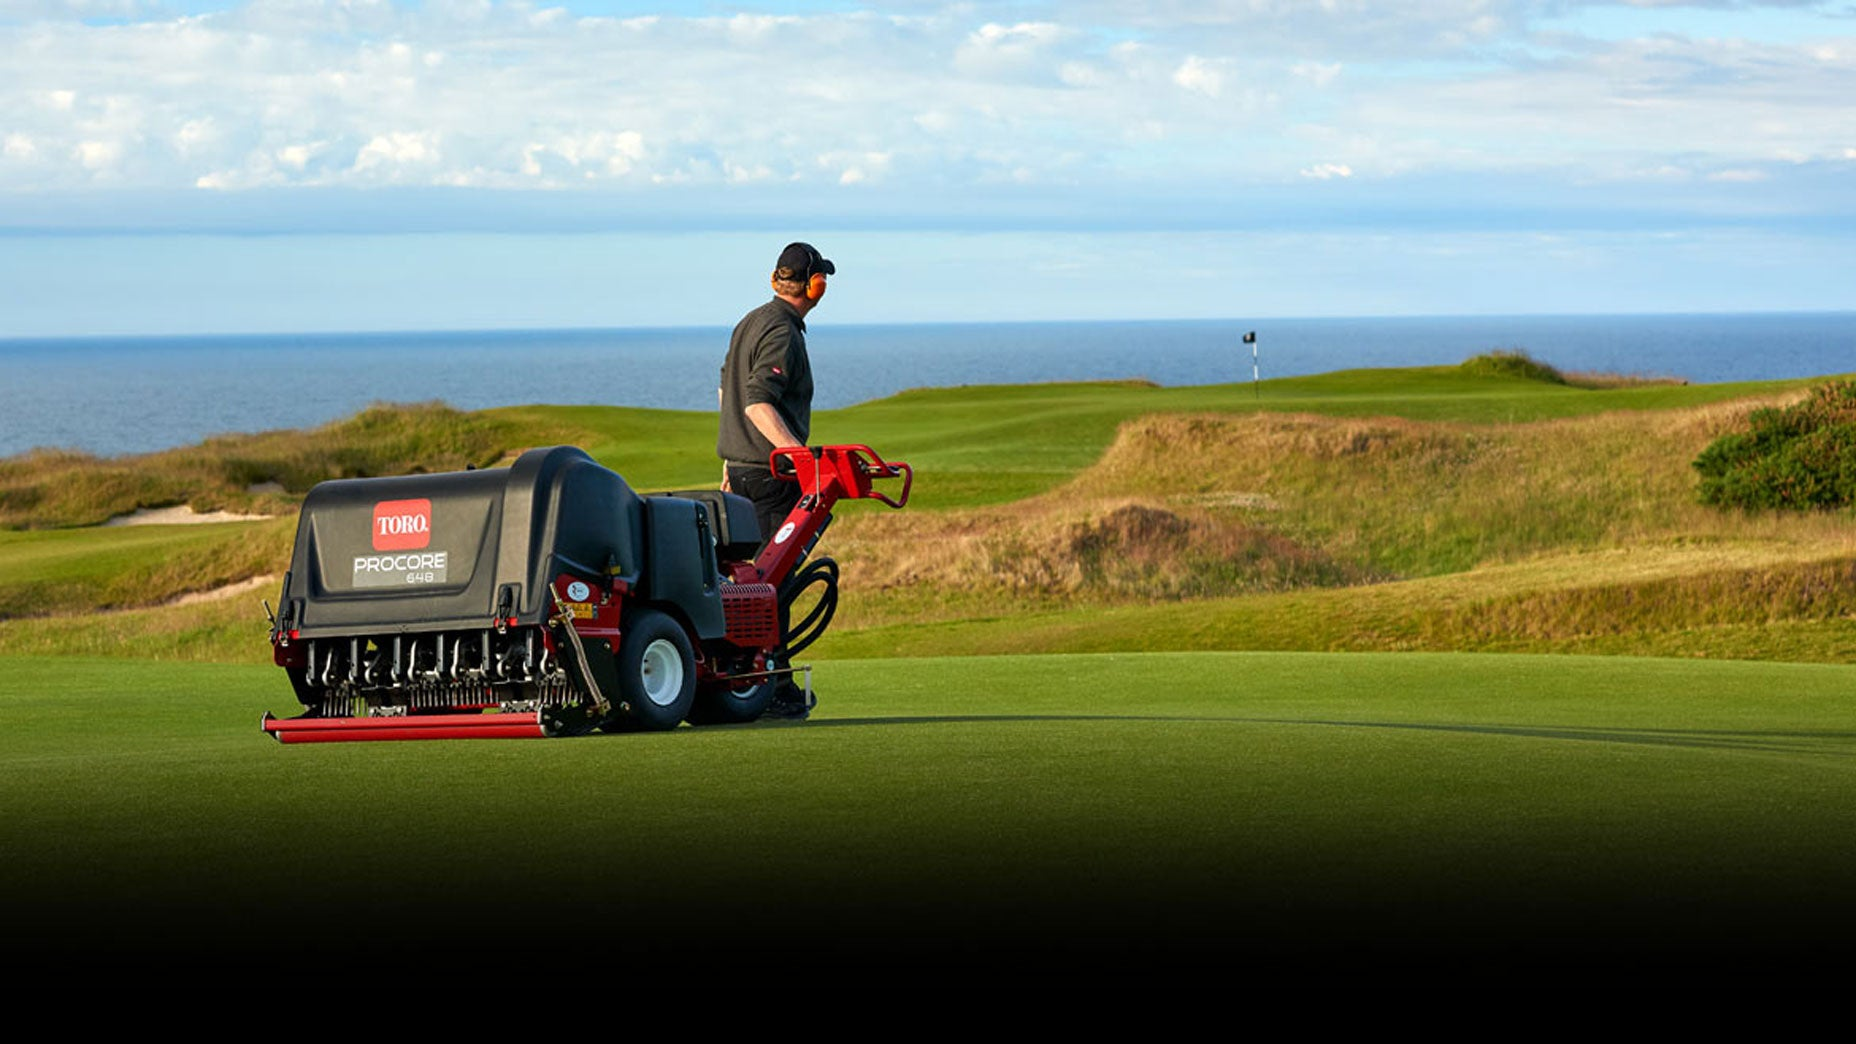 toro golf course aerator